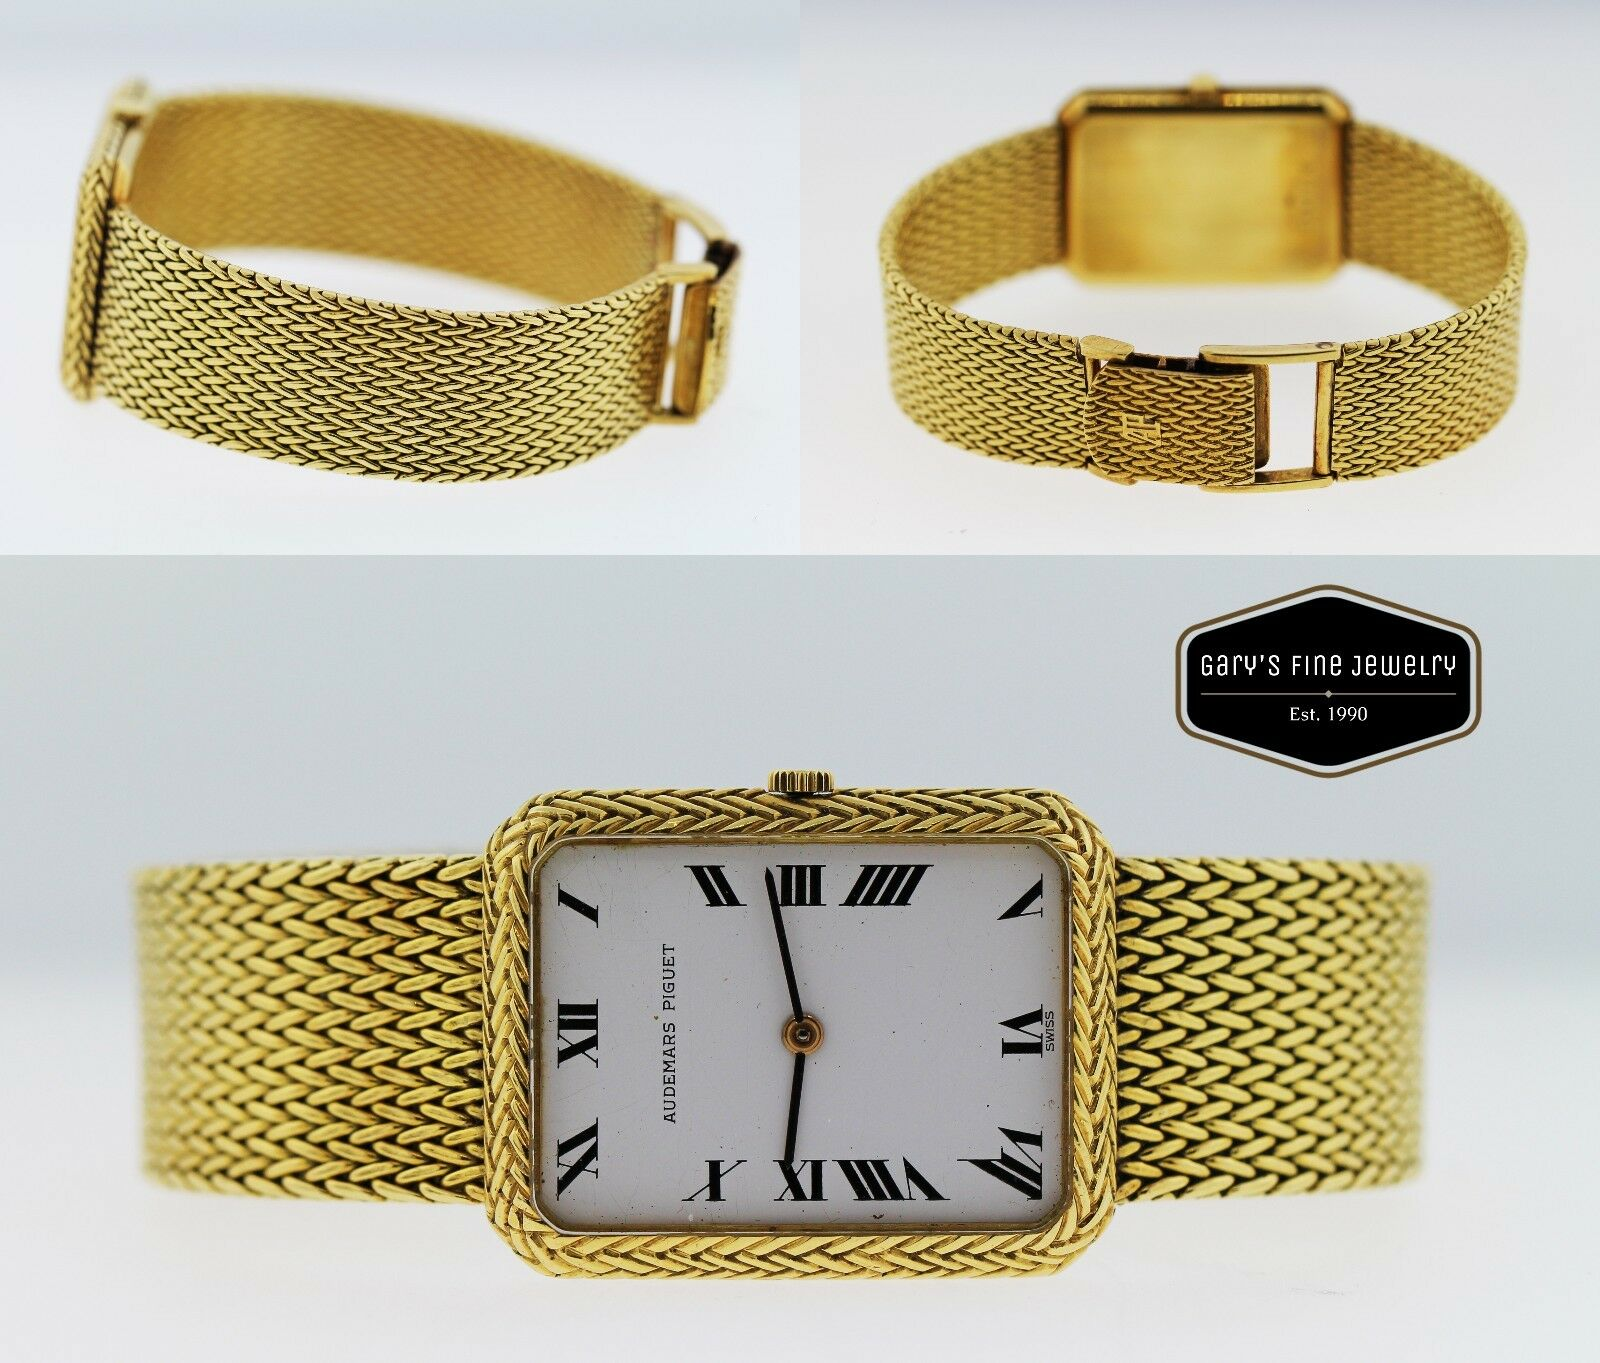 Audemars Piguet 18K Yellow Gold Unisex Watch Mesh Bracelet 24x32mm